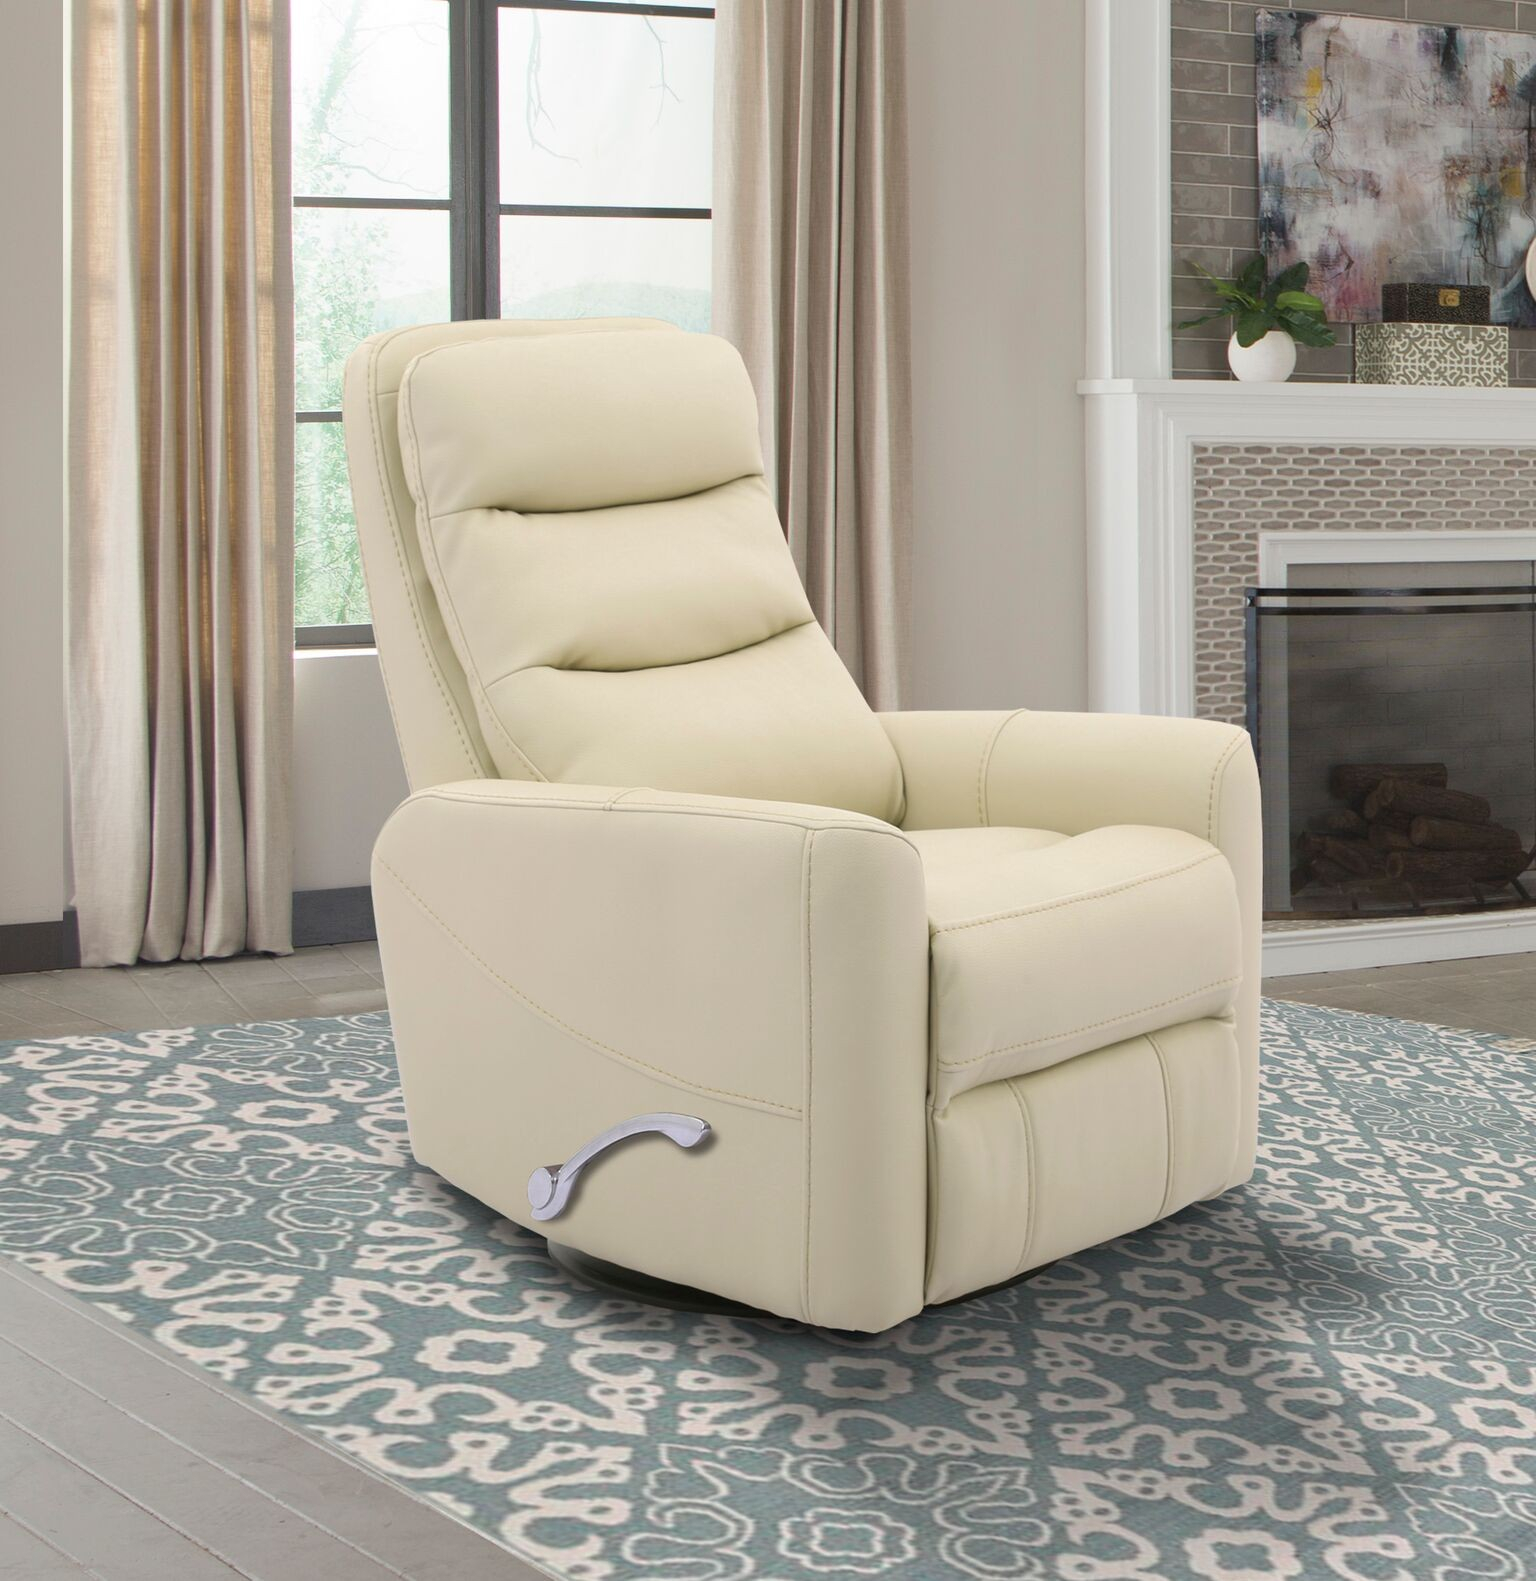 Hercules Oyster Swivel Glider Recliner With Articulating Headrest Regarding Hercules Chocolate Swivel Glider Recliners (View 6 of 20)